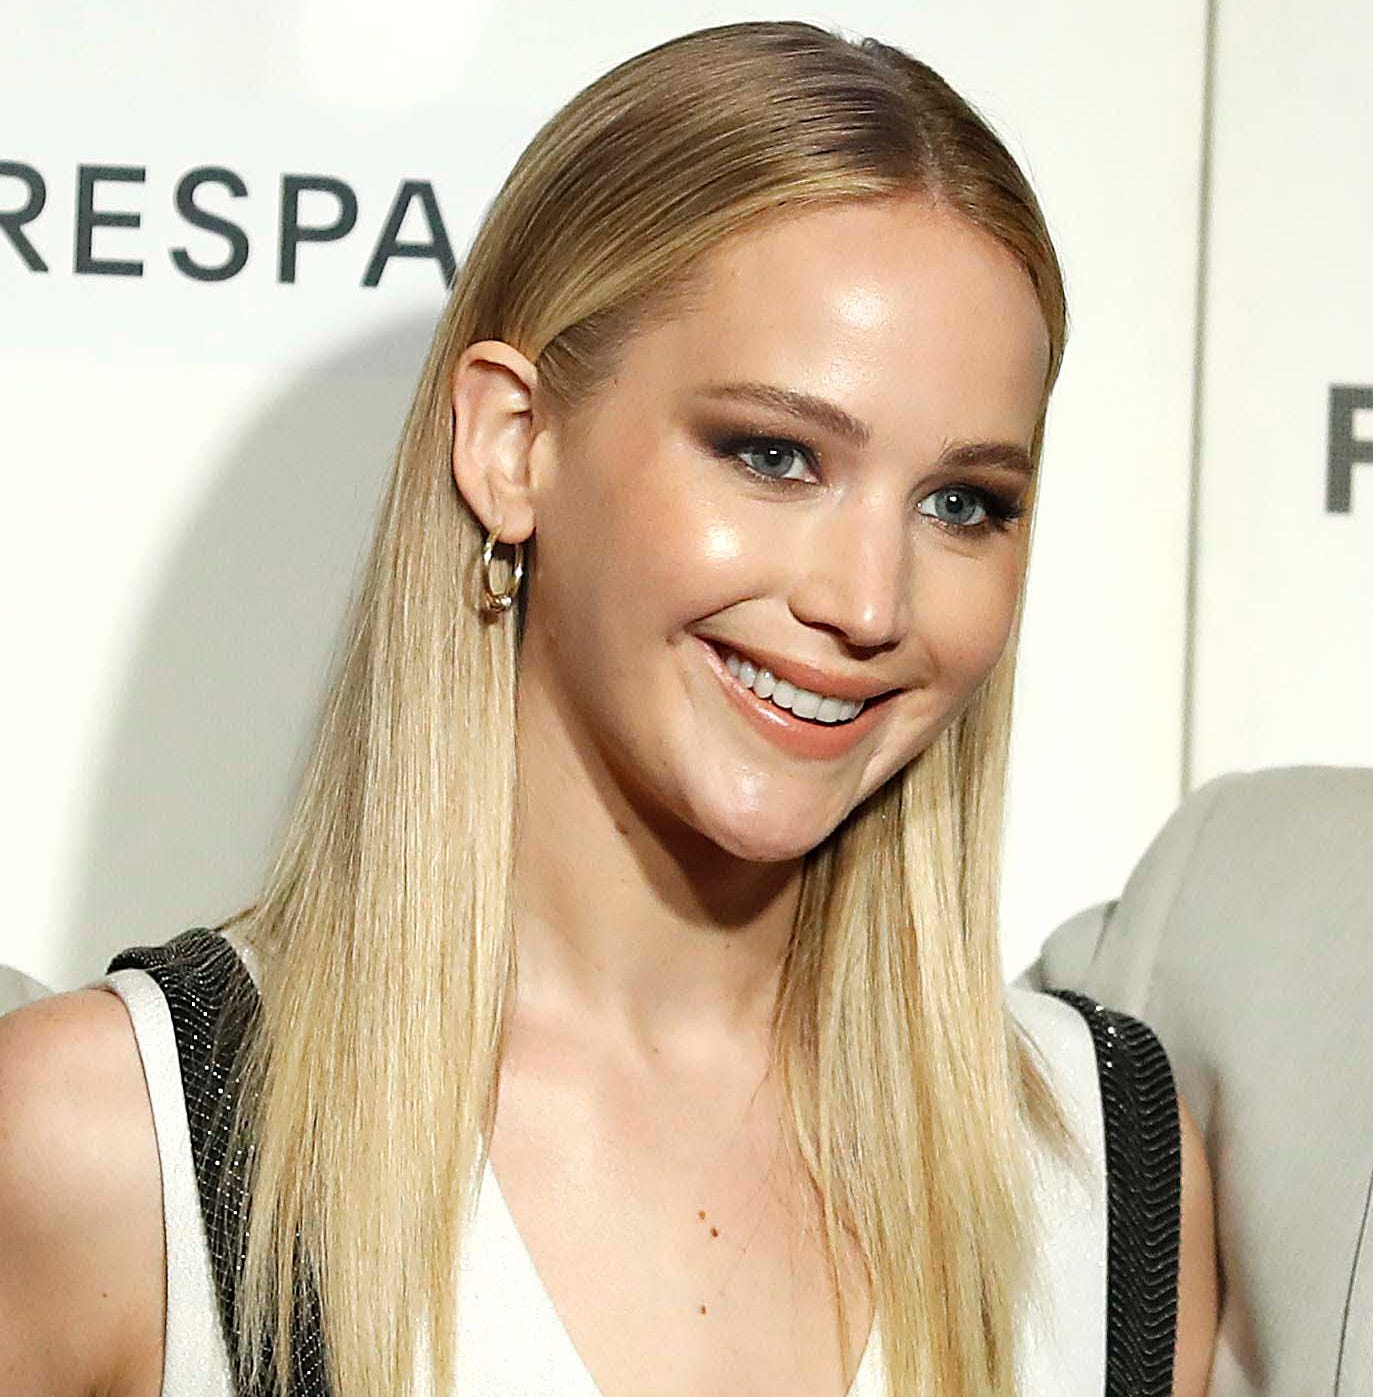 Jennifer Lawrence attends Tribeca Talks - Directors Series with David O. Russell and Jennifer Lawrence during the 2019 Tribeca Film Festival at BMCC Tribeca PAC on April 27, 2019 in New York City.